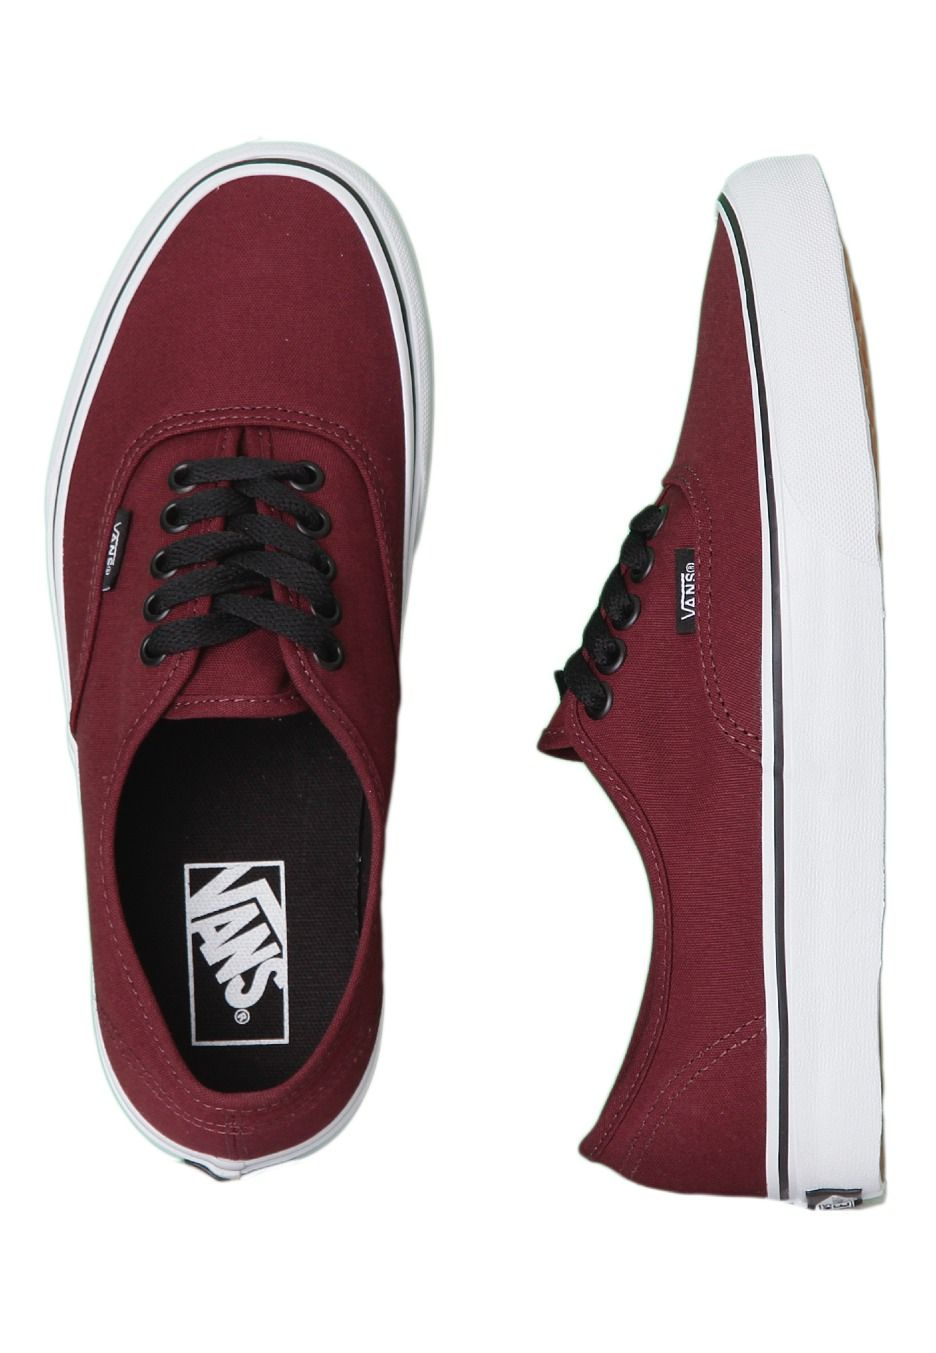 9f3a80f889 Vans - Authentic Port Royale Black - Damesschoenen - Official Merchandise  Online Shop - Impericon Nederland